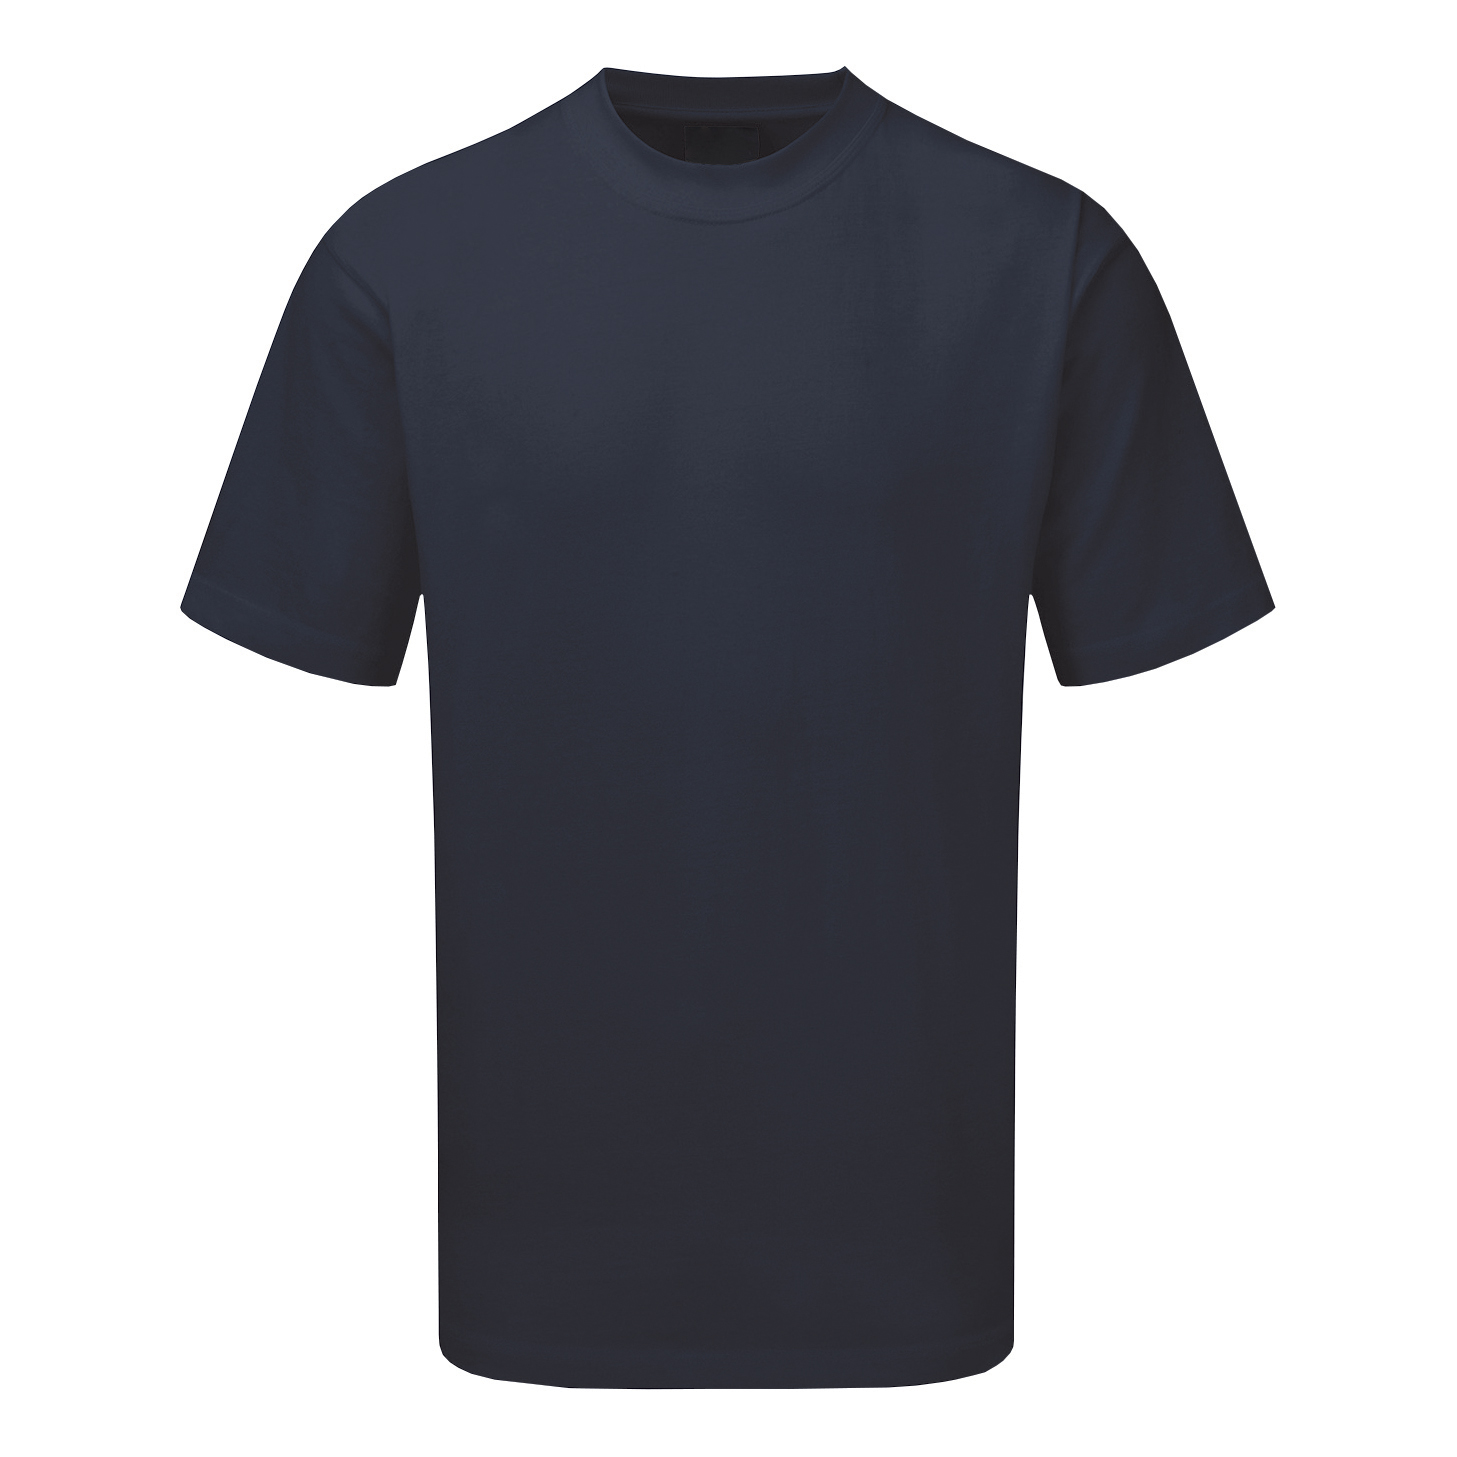 Premium T-Shirt Polycotton Triple Stitched Size XS Navy Ref CLCTSHWNXS *Up to 3 Day Leadtime*